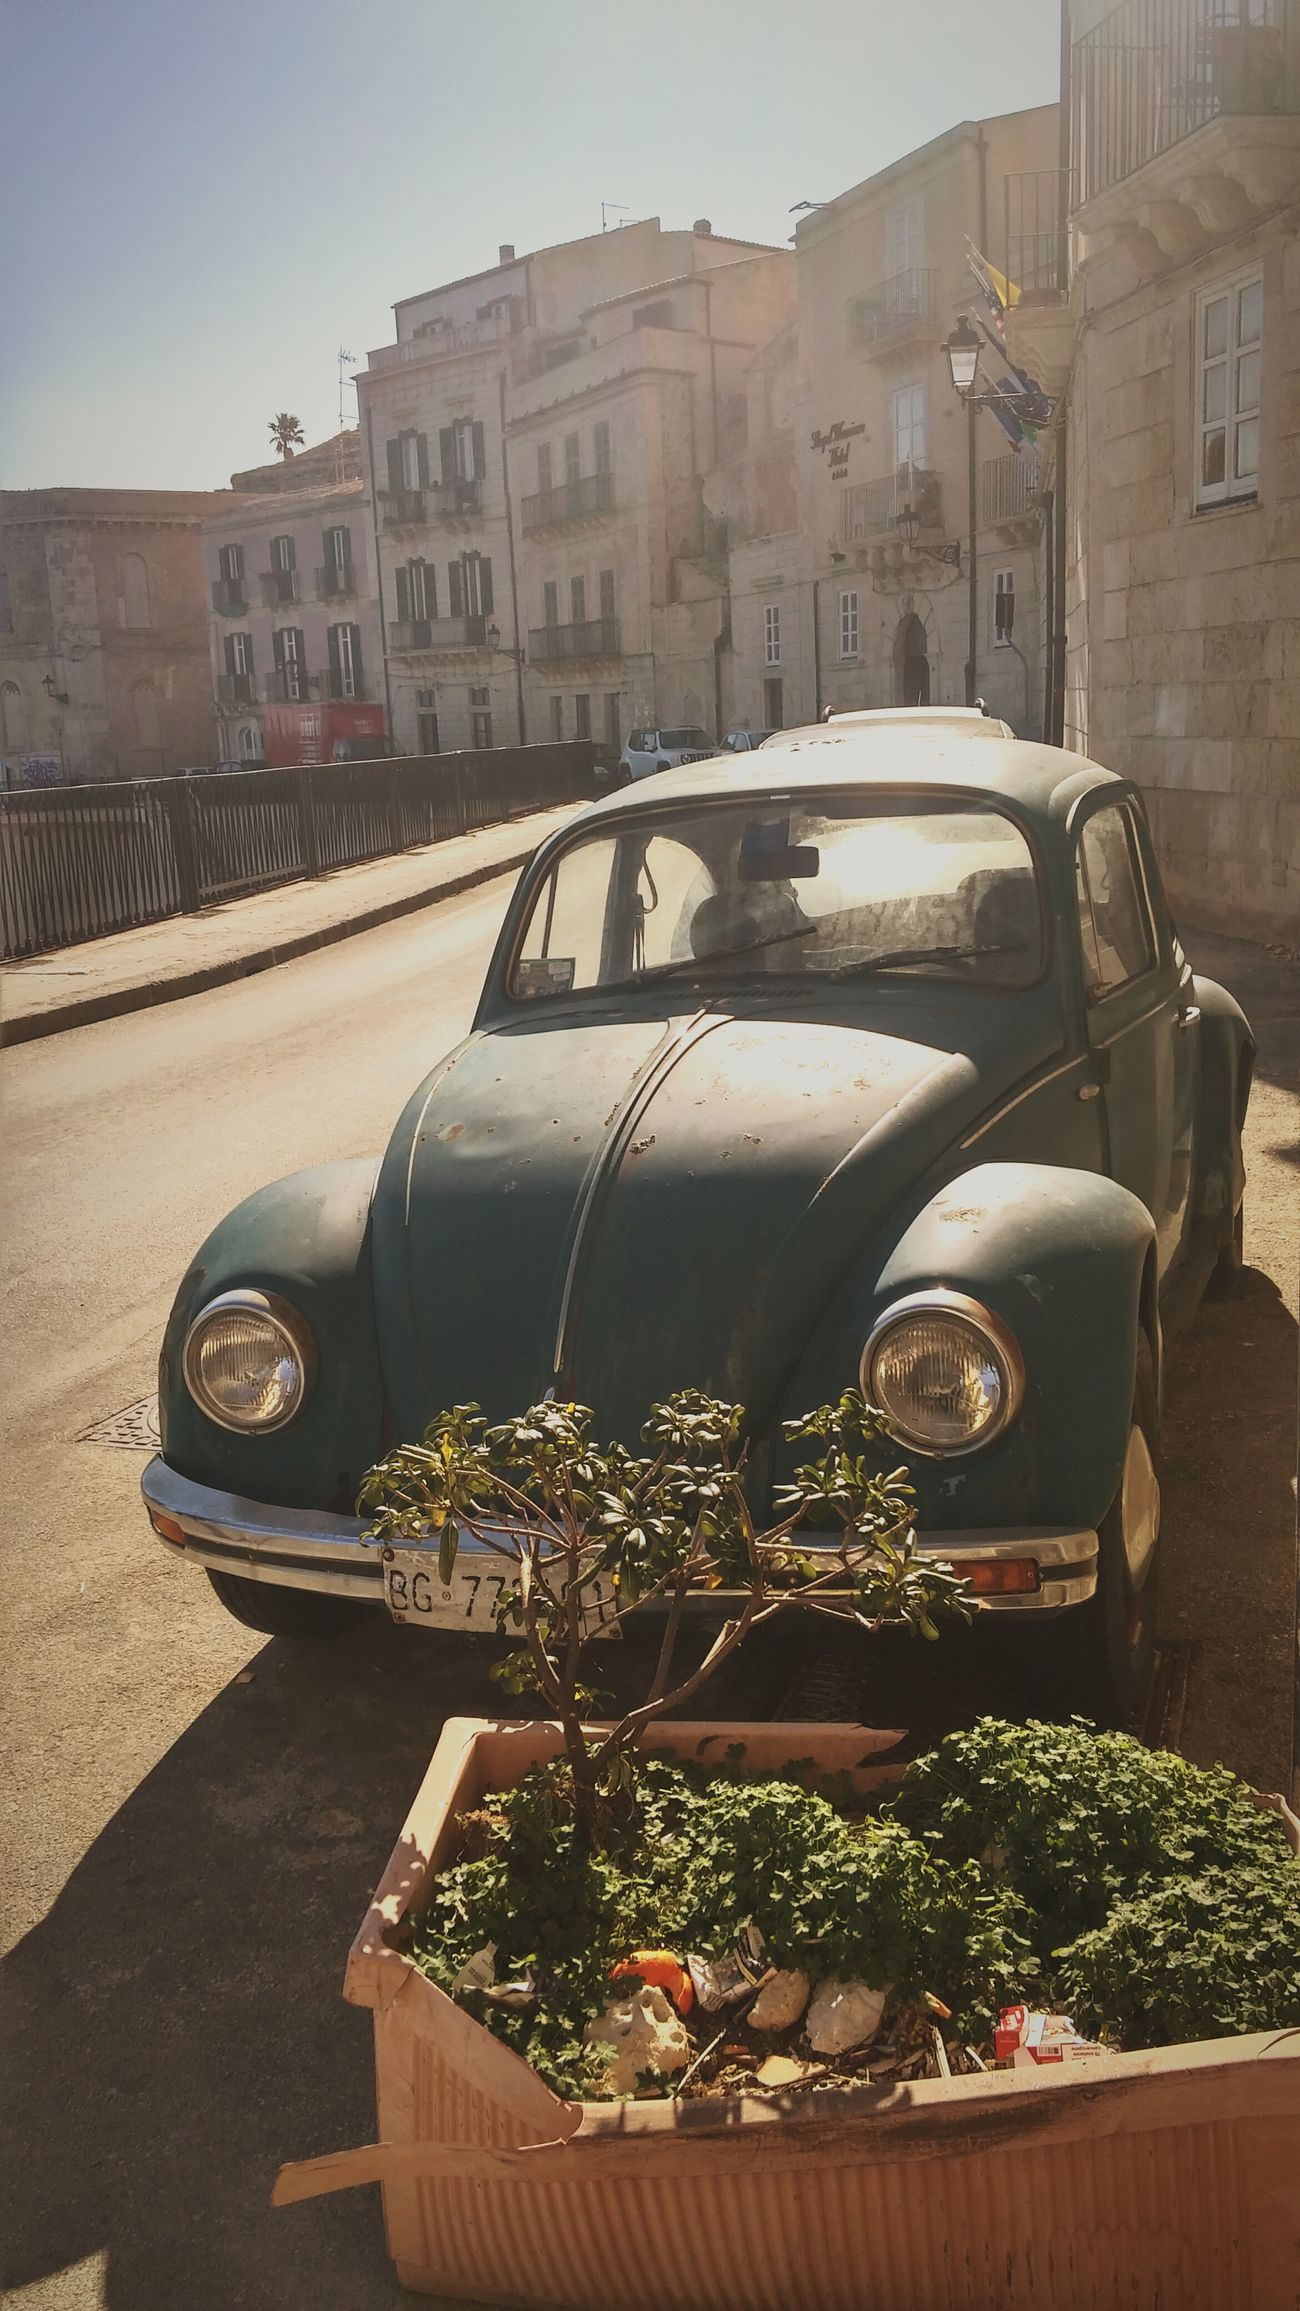 The City Light City Car Old Car Syracusa Historical Building Outside Februar 2017 Walking Sicilianjourney City Life Travel Destinations Sunny Day In The City Holiday Trip